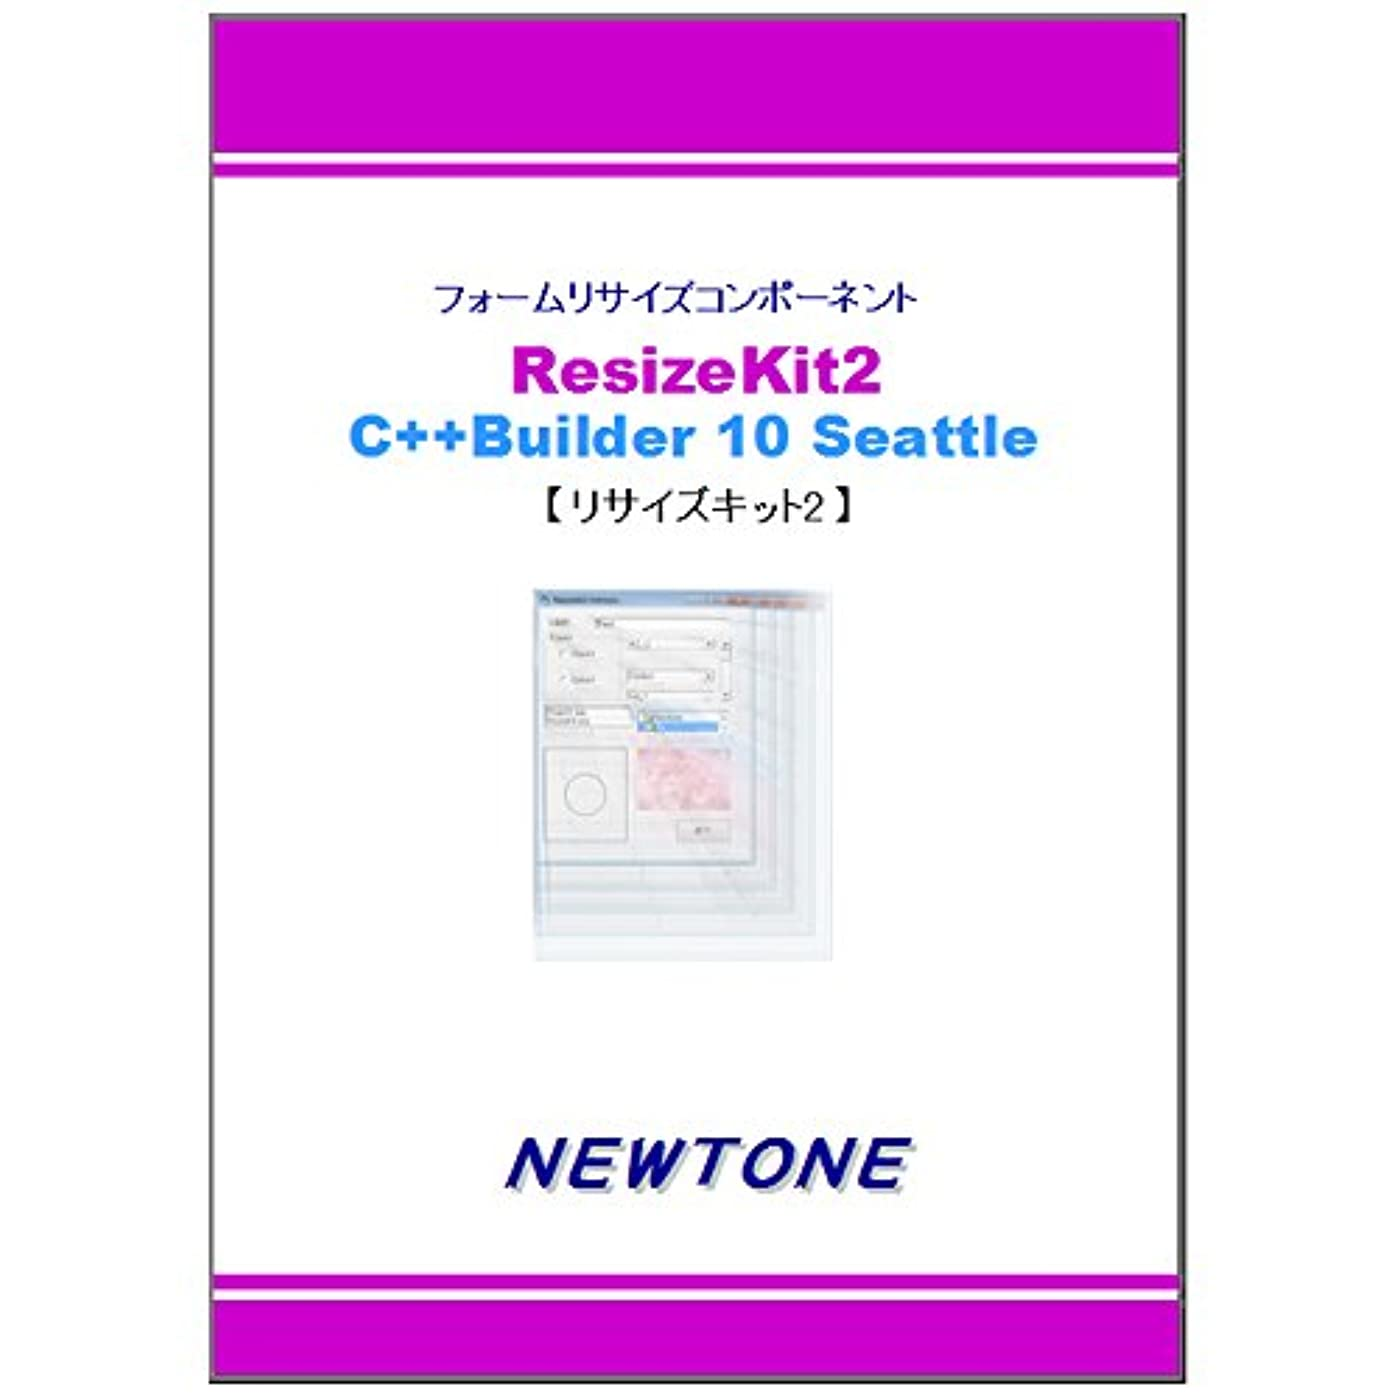 ペンダント安全成分ResizeKit2 C++Builder 10 Seattle